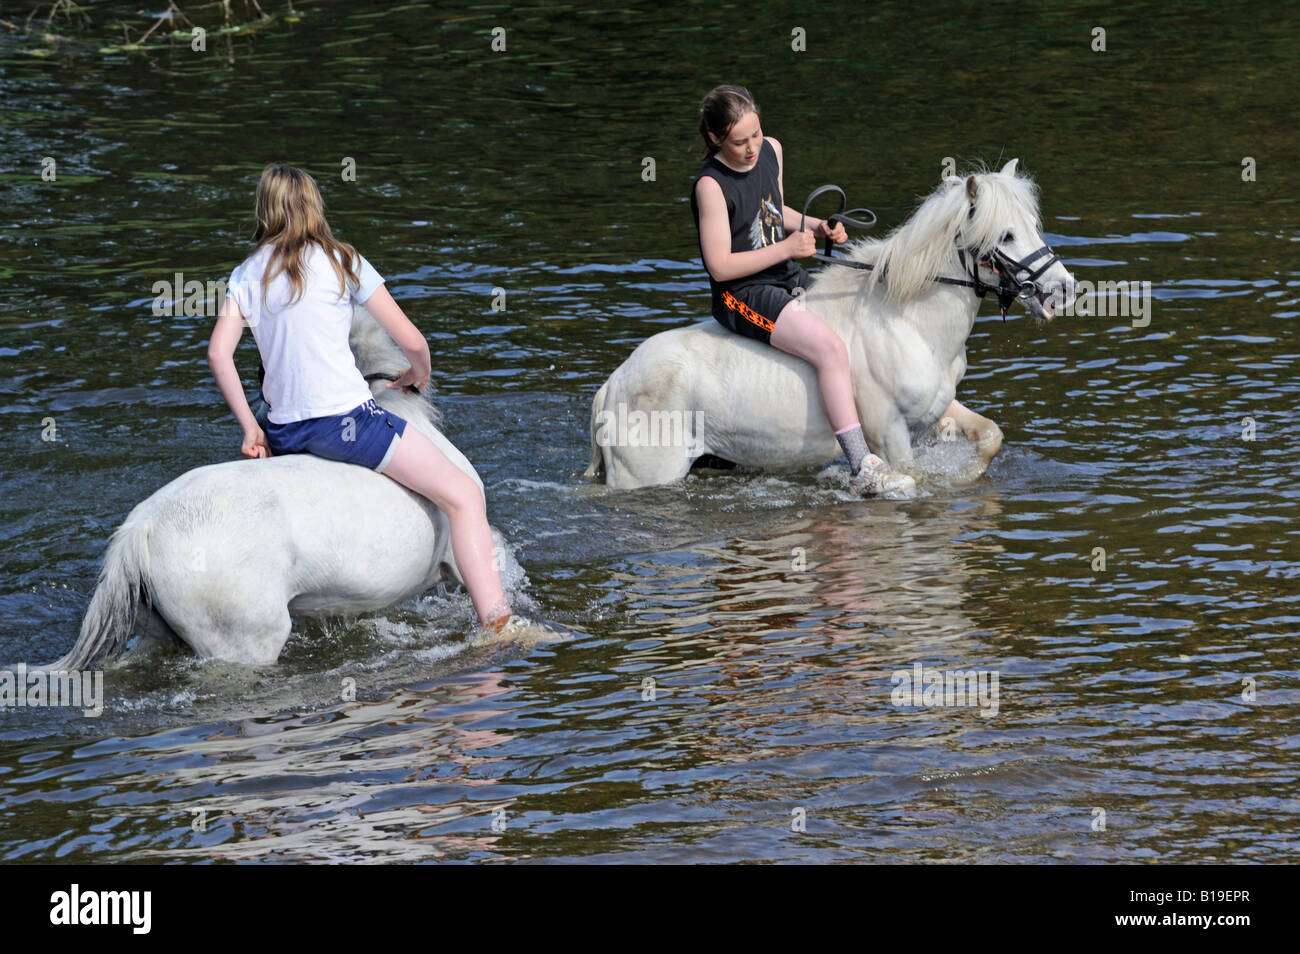 Two gypsy traveller girls riding ponies bareback in River Eden. Appleby Horse Fair. Appleby-in-Westmorland, Cumbria, - Stock Image